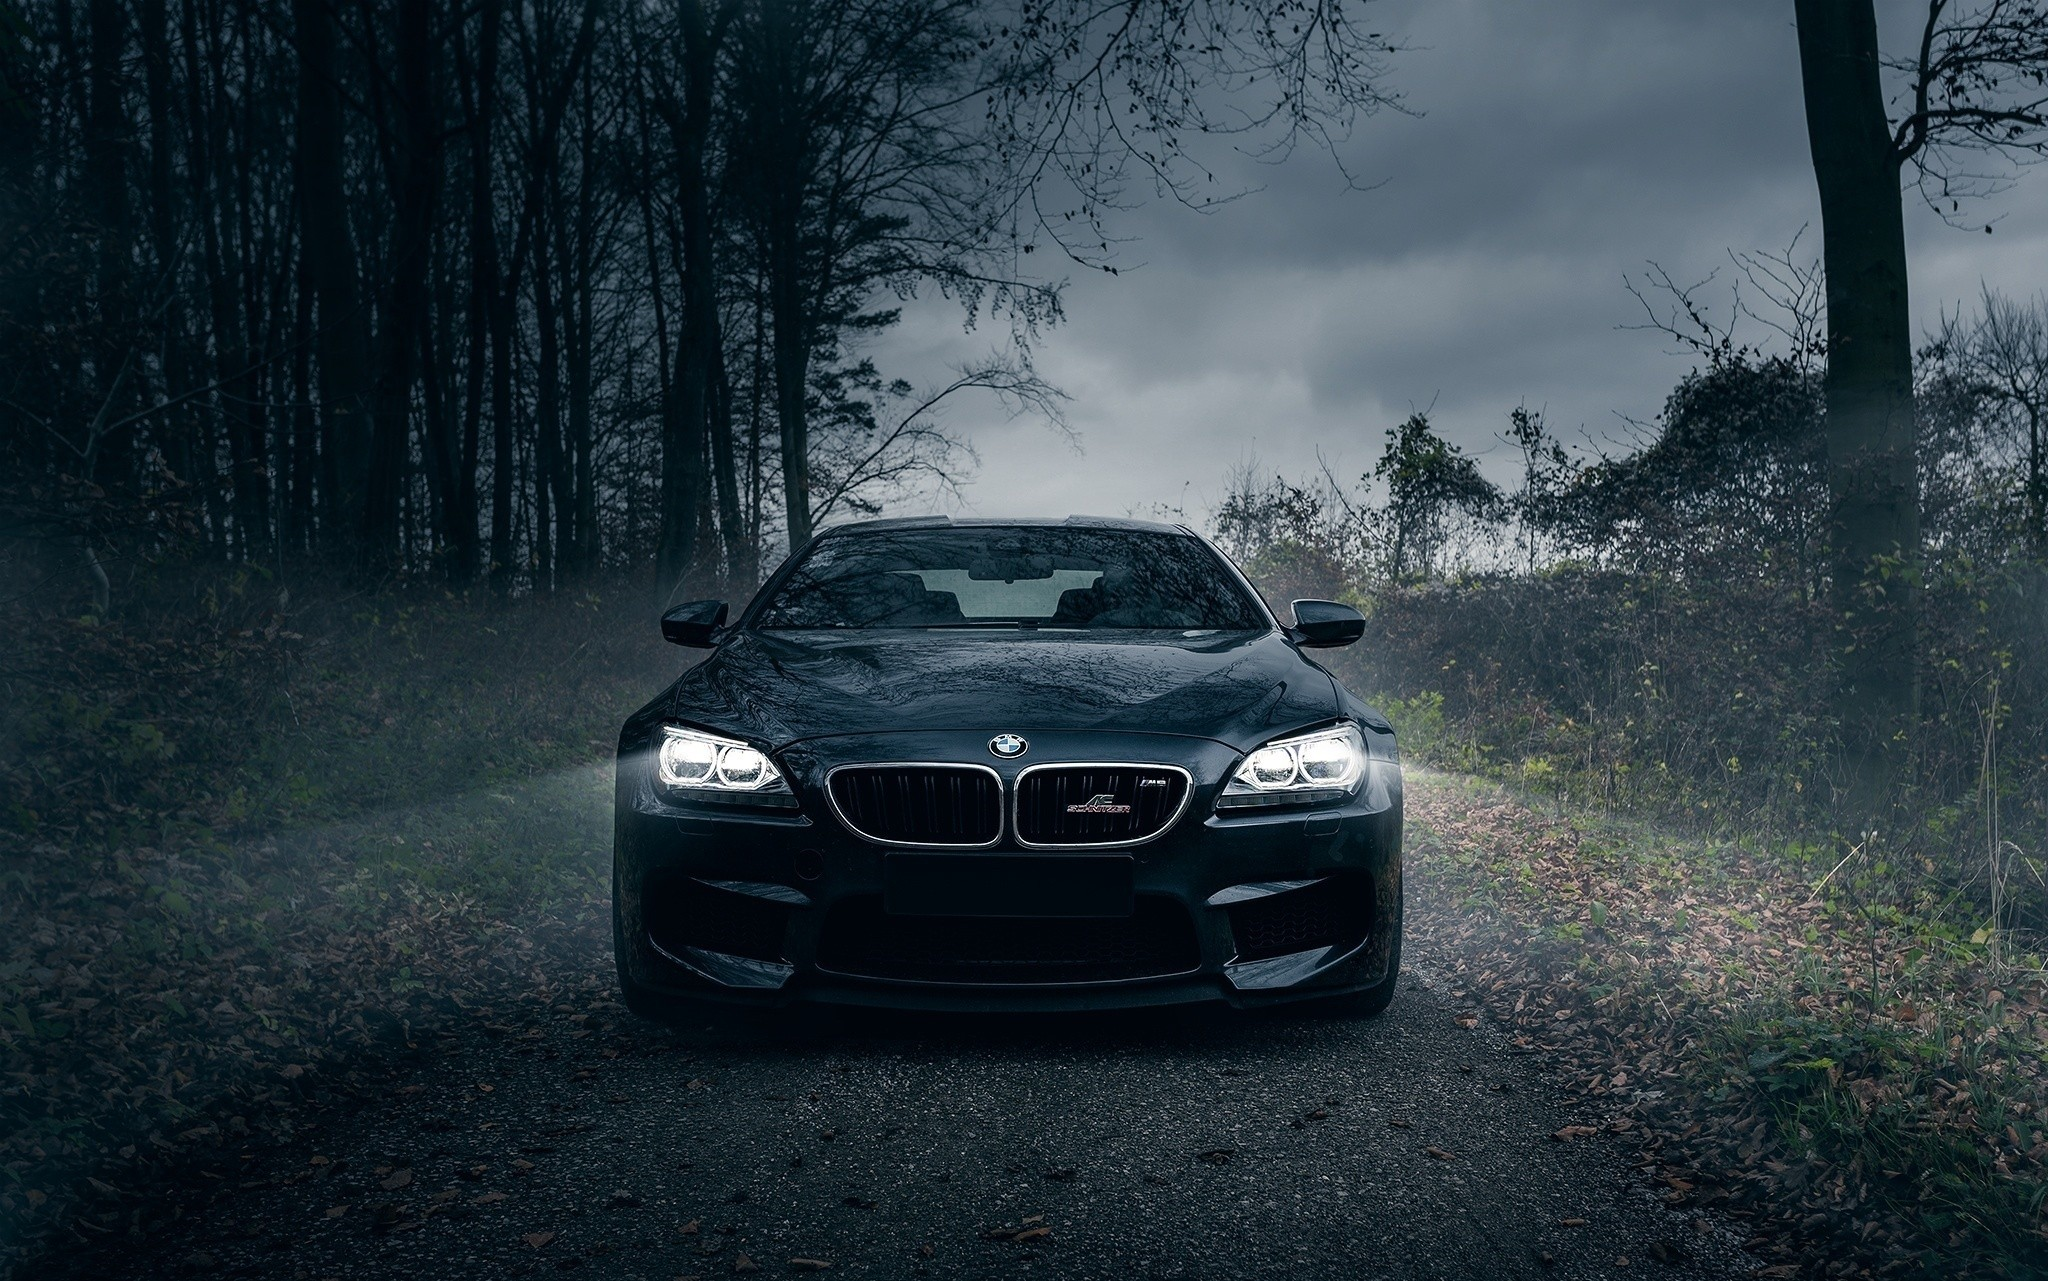 bmw 5 series 2, hd cars, 4k wallpapers, images, backgrounds, photos